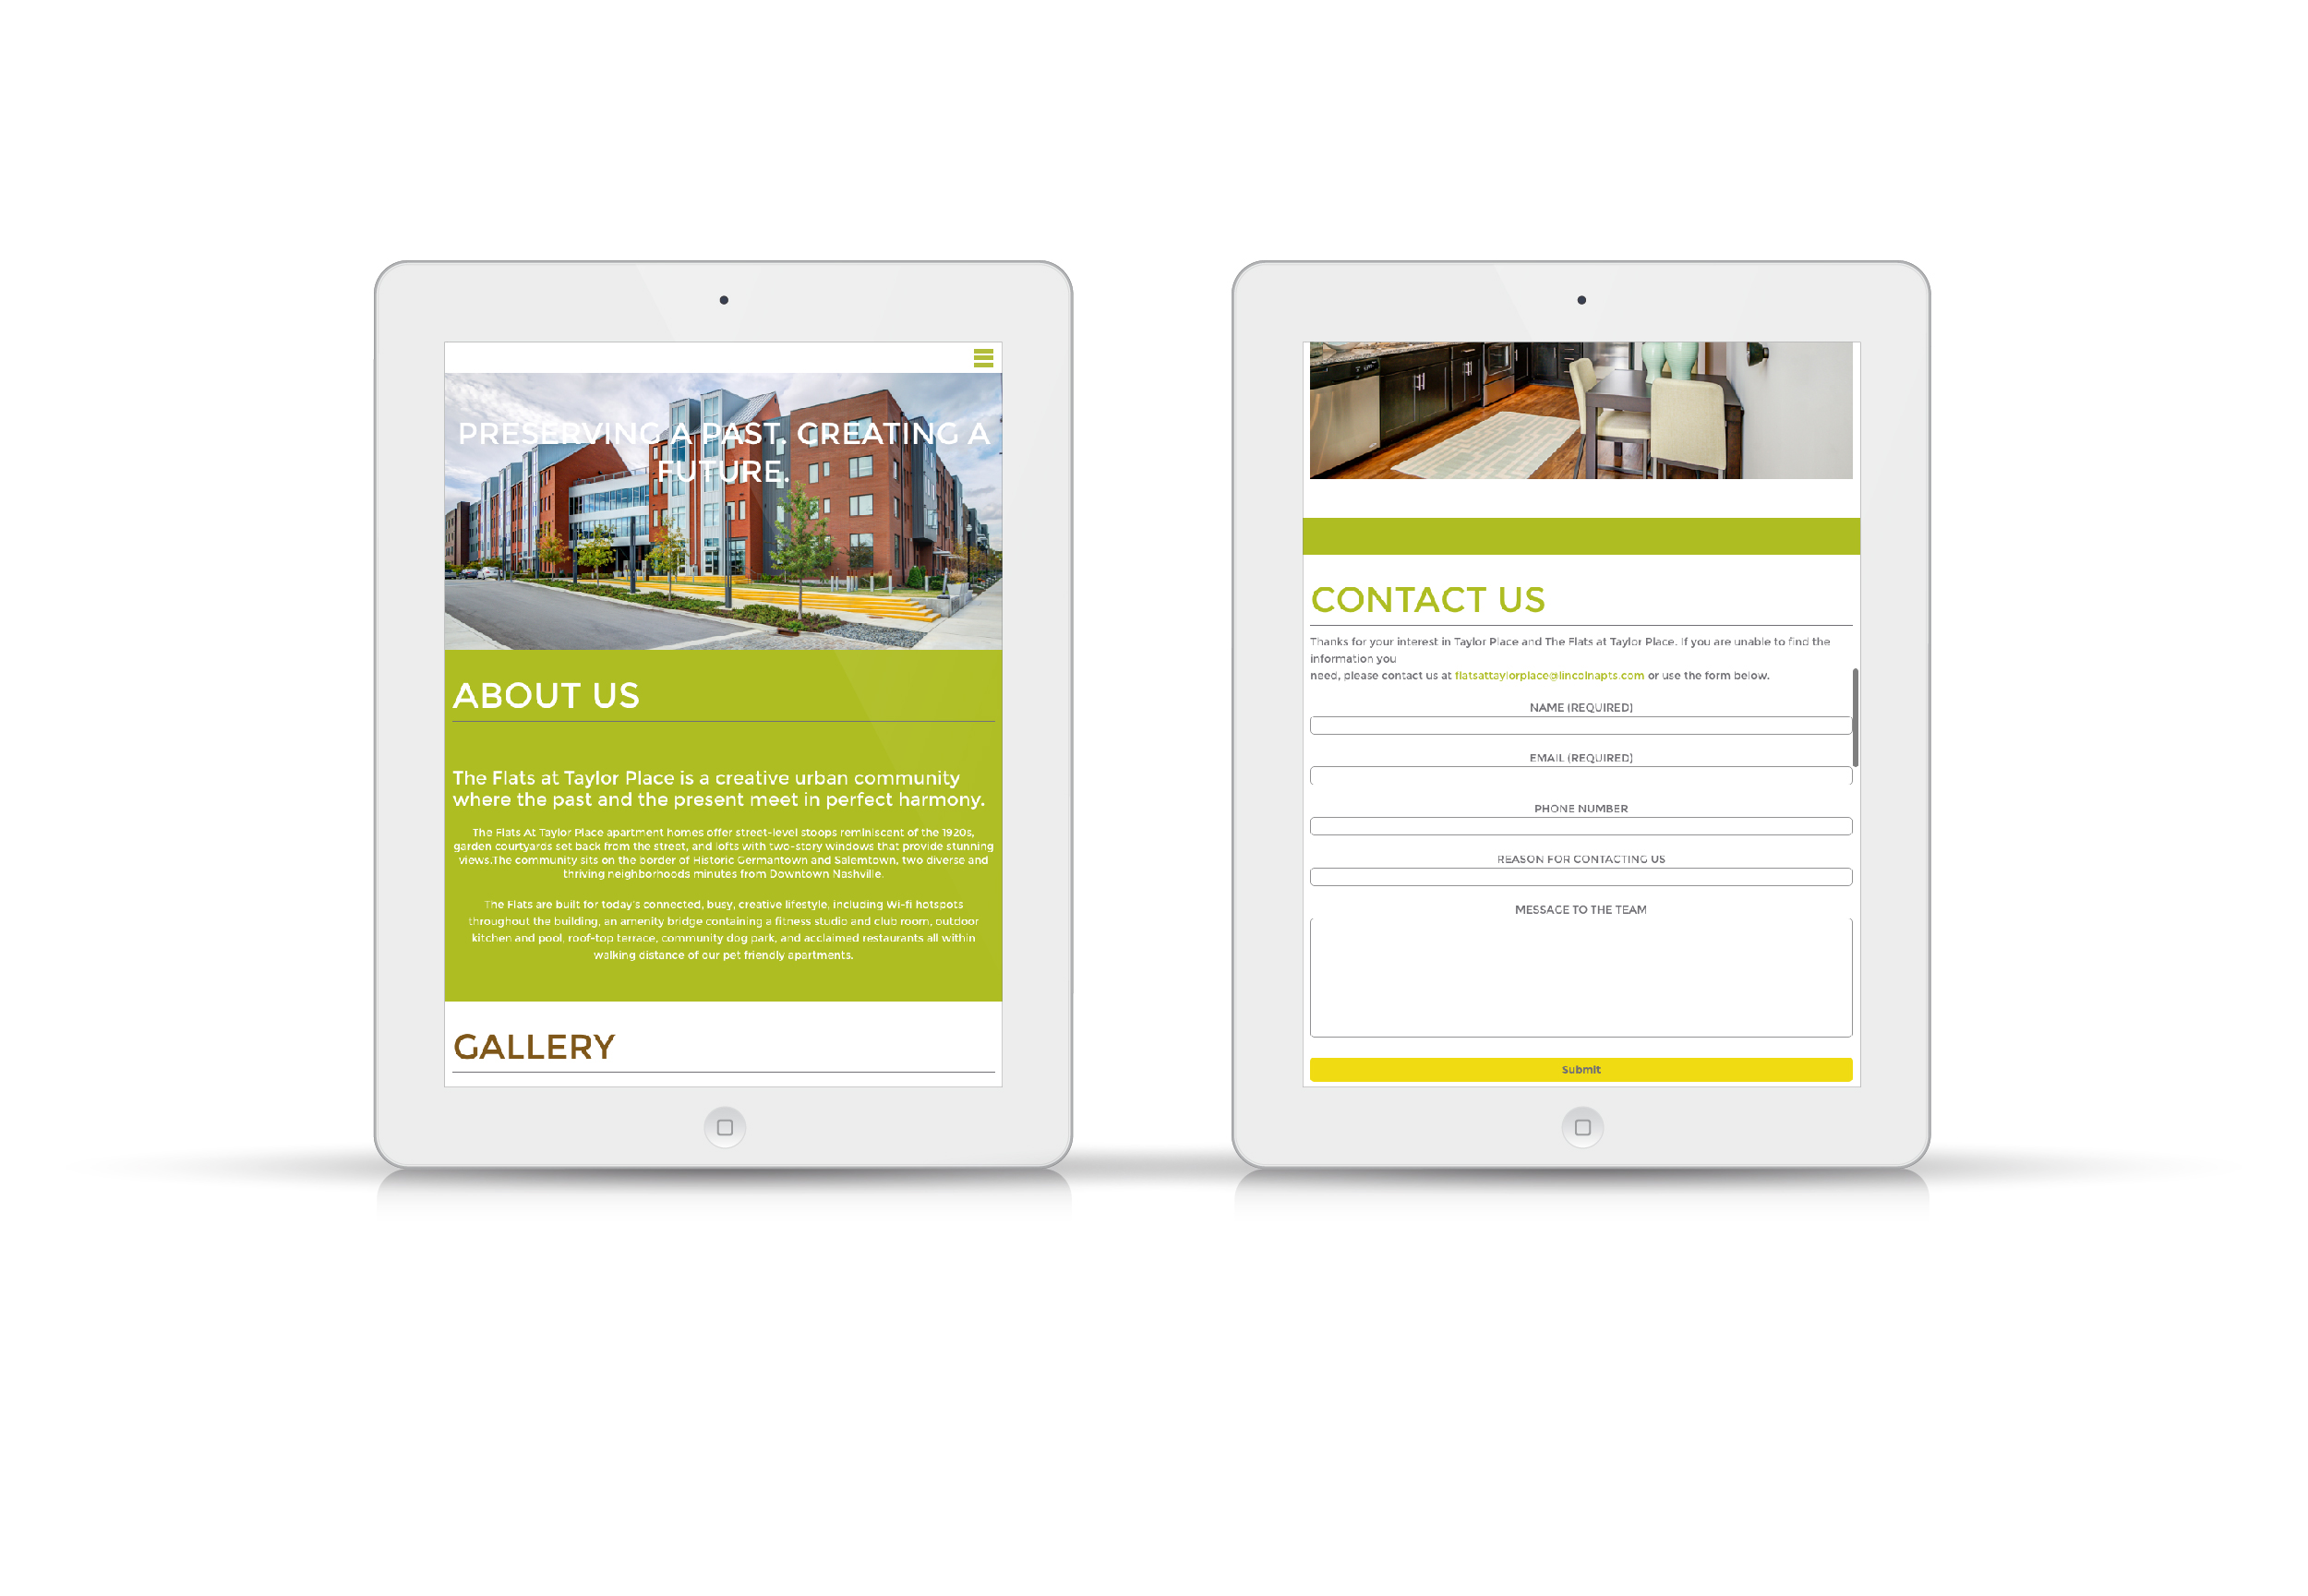 The Flats at Taylor Place Website On Tablet Screen